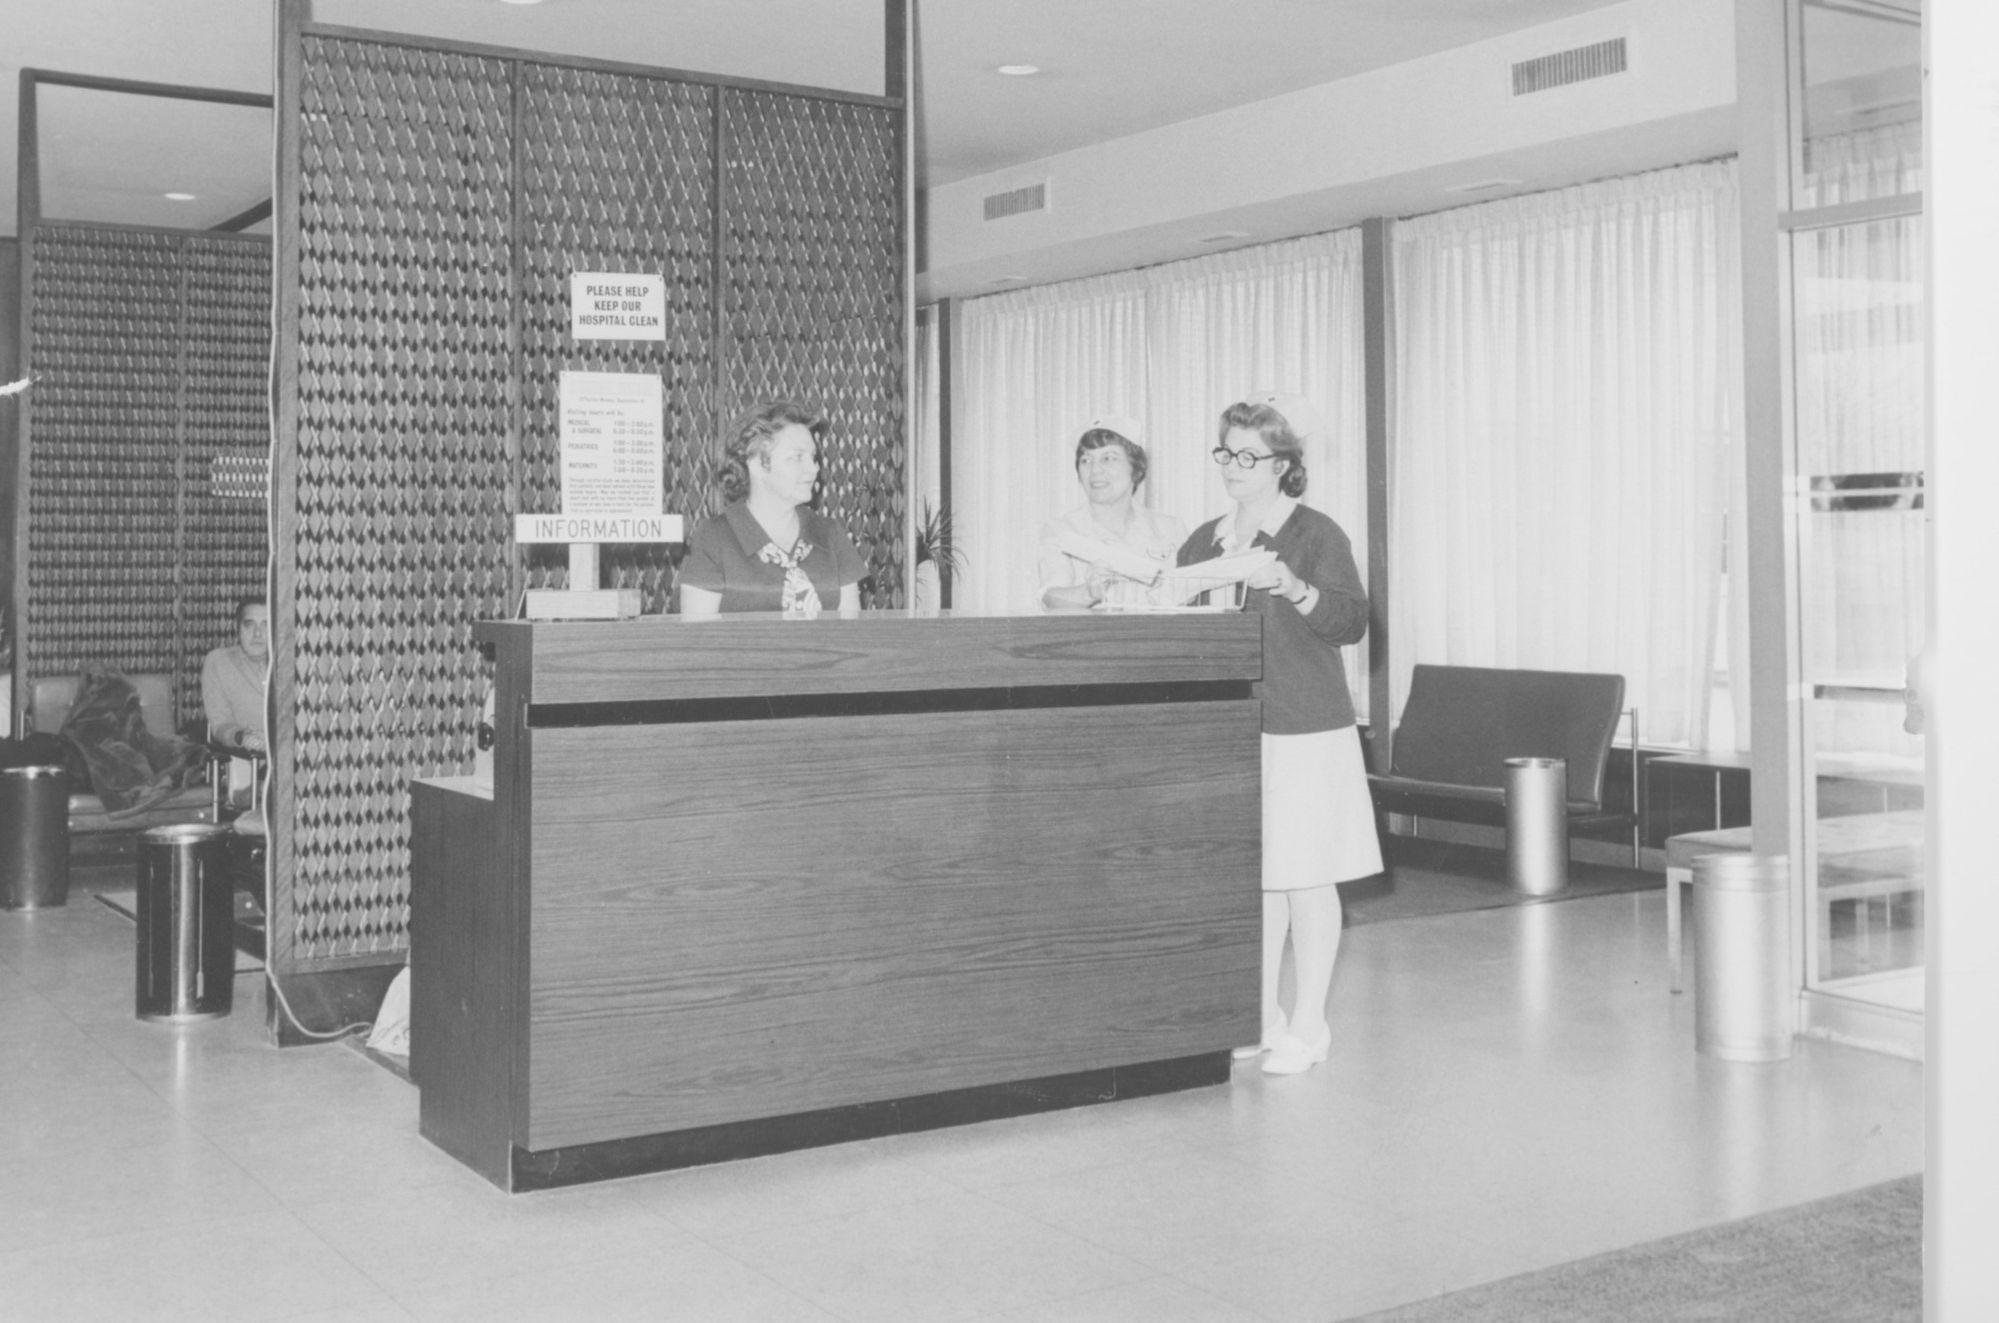 Nurses gather in the original lobby of Franklin Hospital, which first opened in 1963. Over the past 50 years, the building has been expanded and renovated.